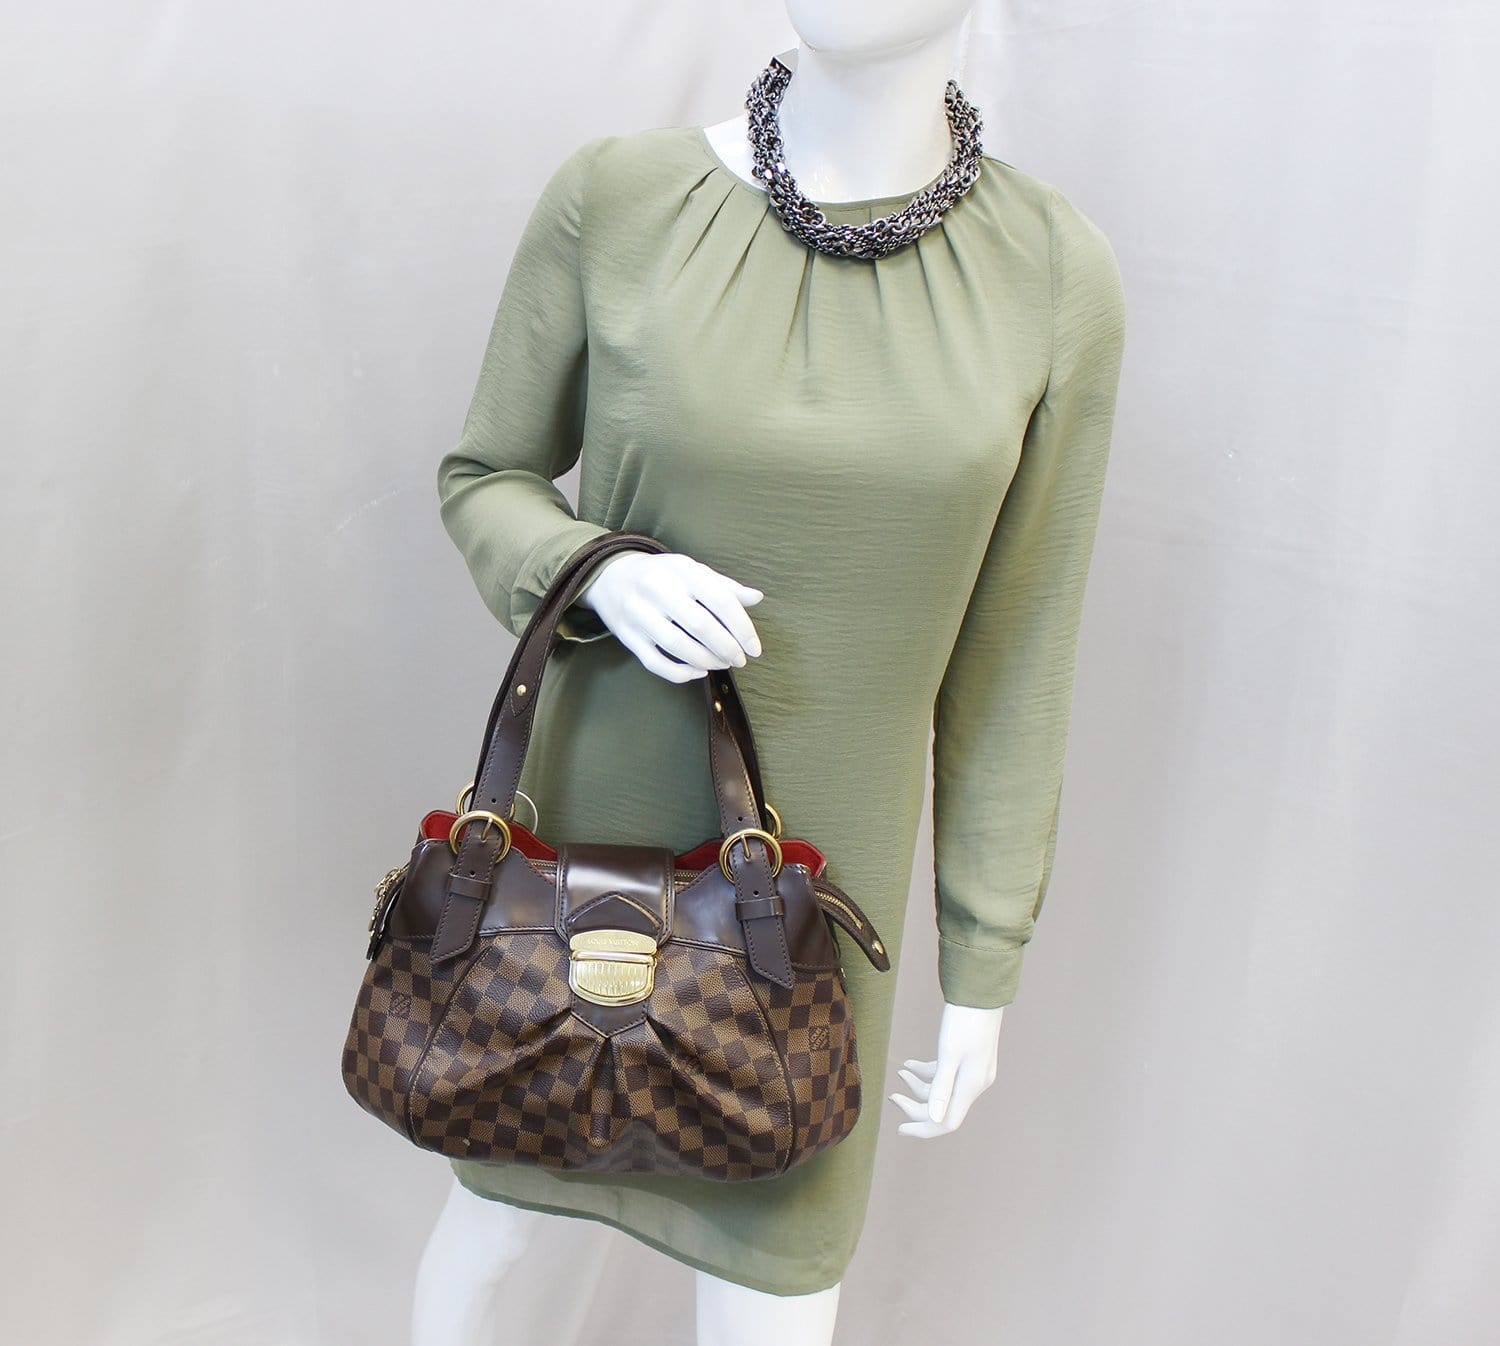 22571 Louis Vuitton Sistina PM